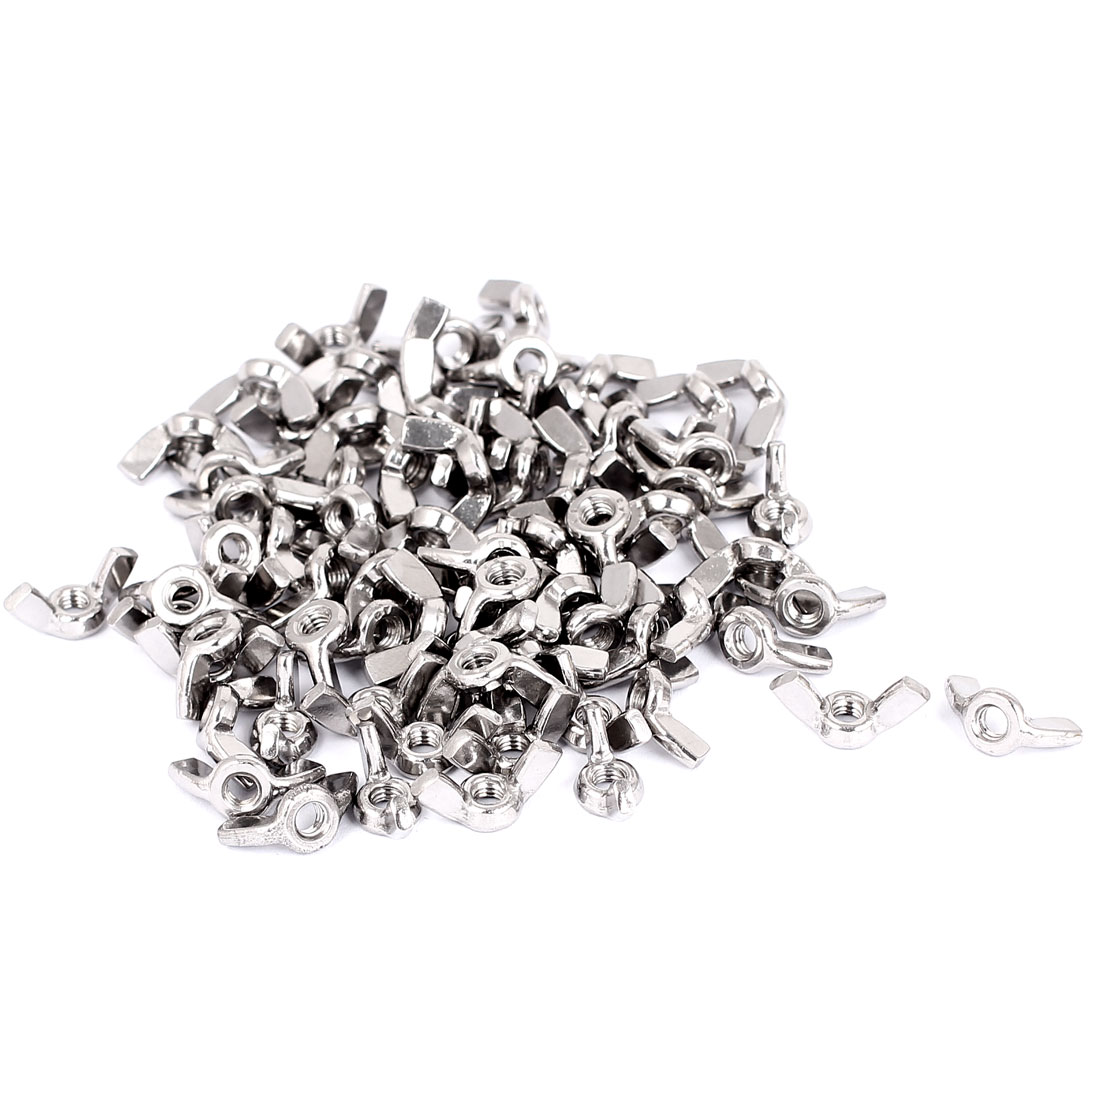 M4 Female Thread Stainless Steel Wingnut Butterfly Wing Nuts Silver Tone 100pcs